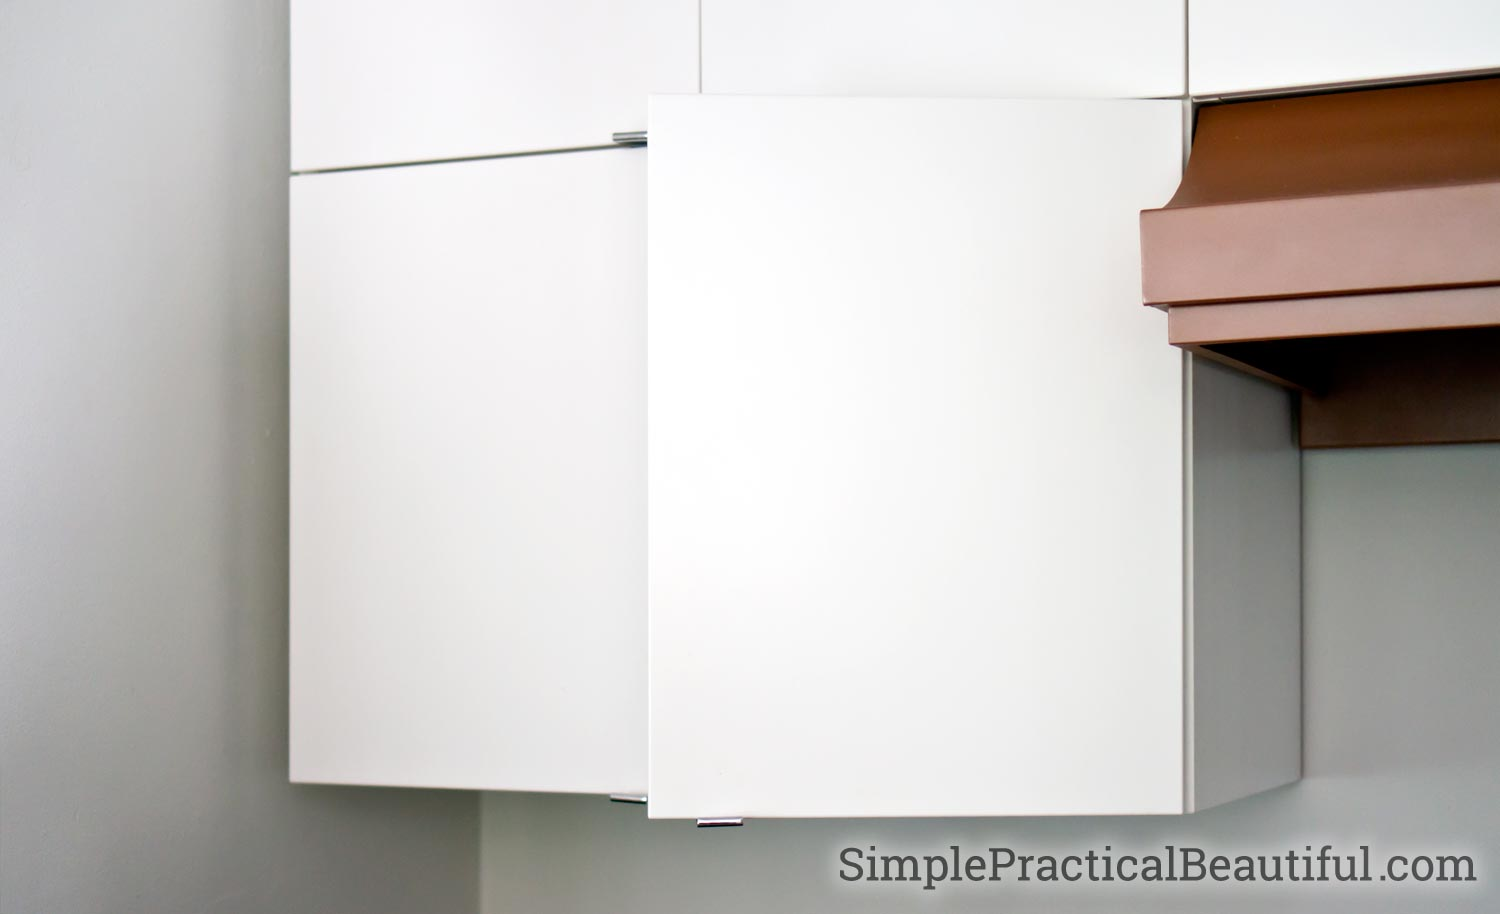 door cabinet make image doors to how with wikihow step titled steps pictures